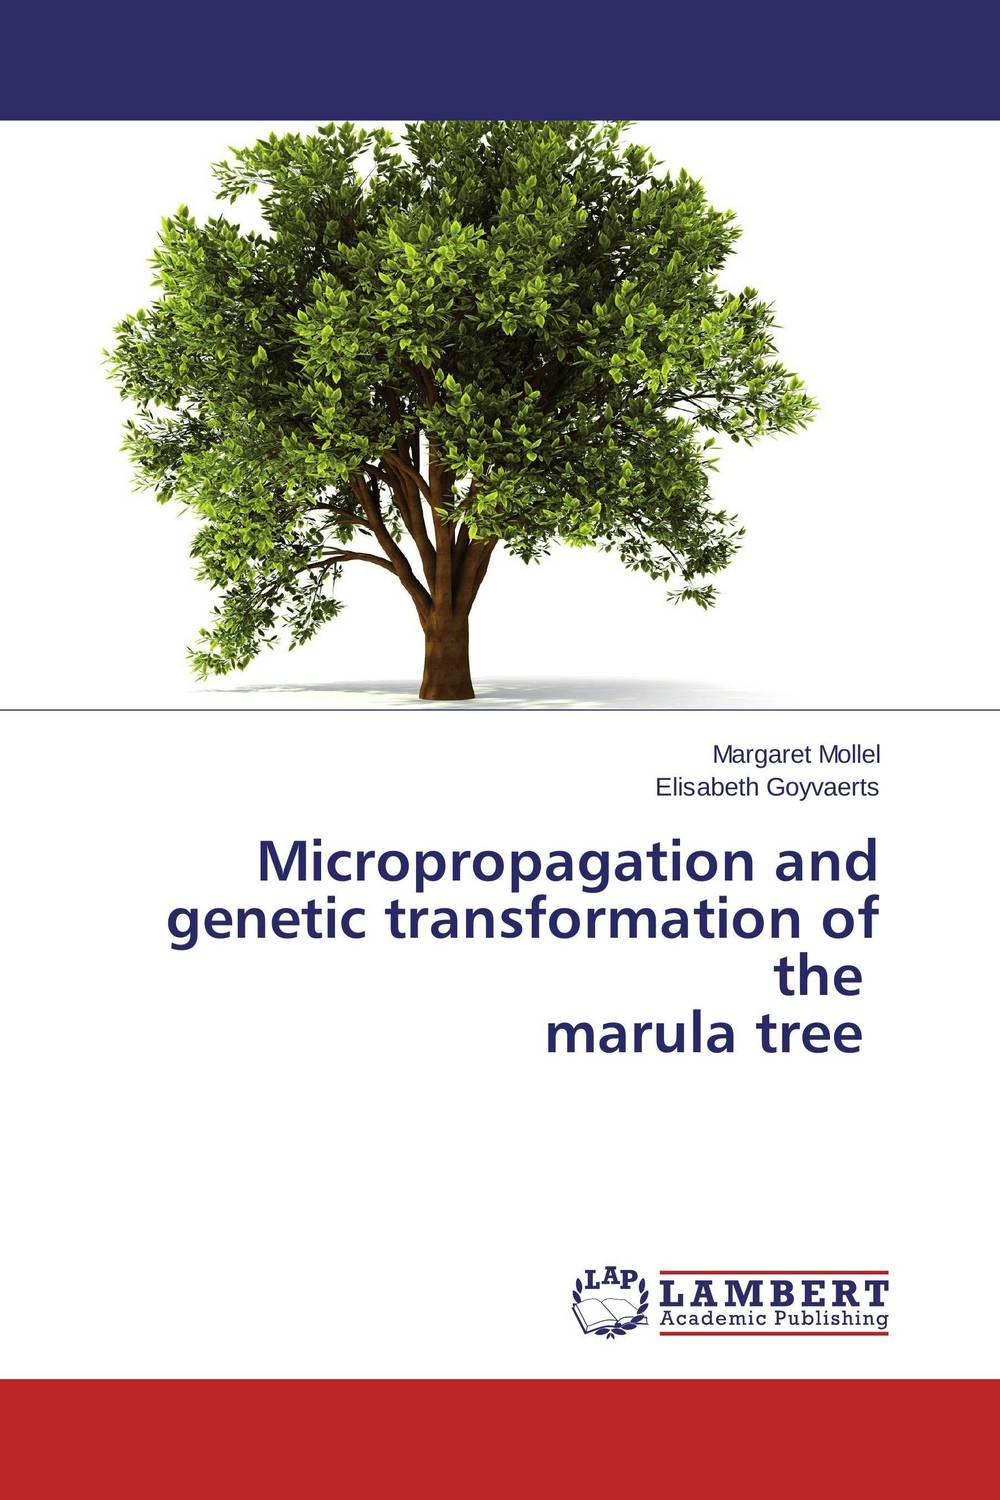 Micropropagation and genetic transformation of the    marula tree viruses cell transformation and cancer 5